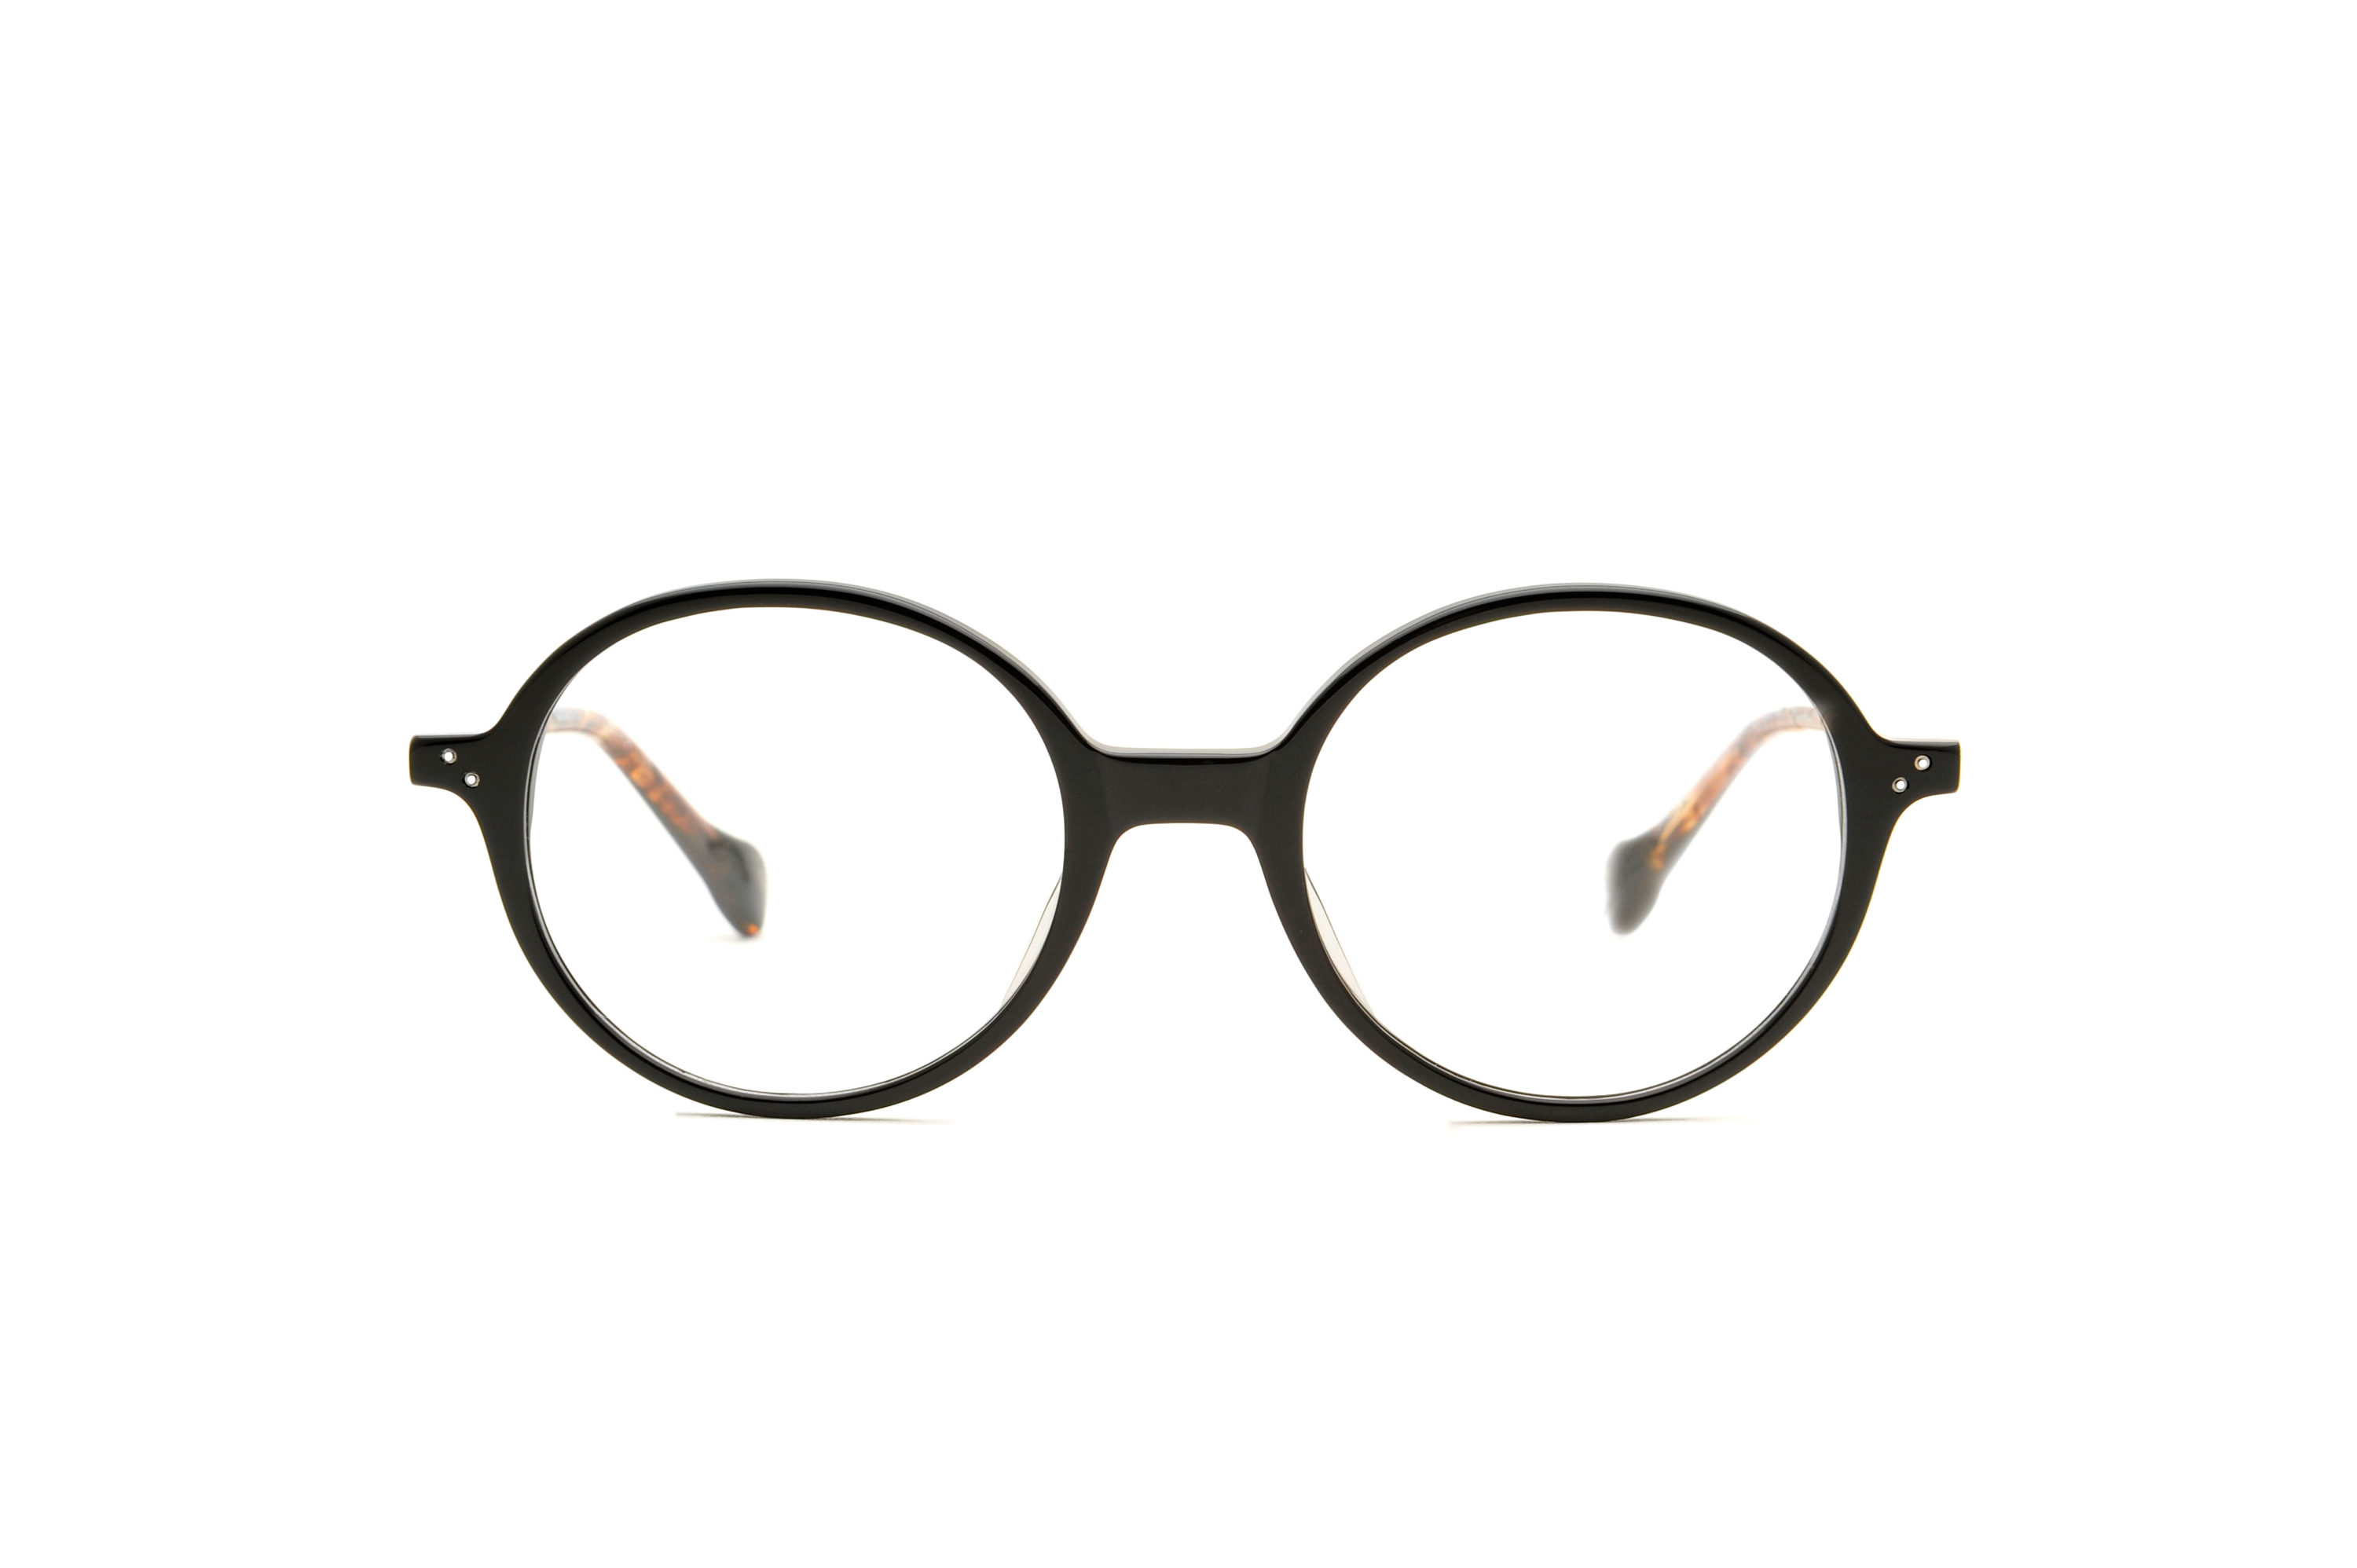 Kingdom acetate rounded black sunglasses by GIGI Studios